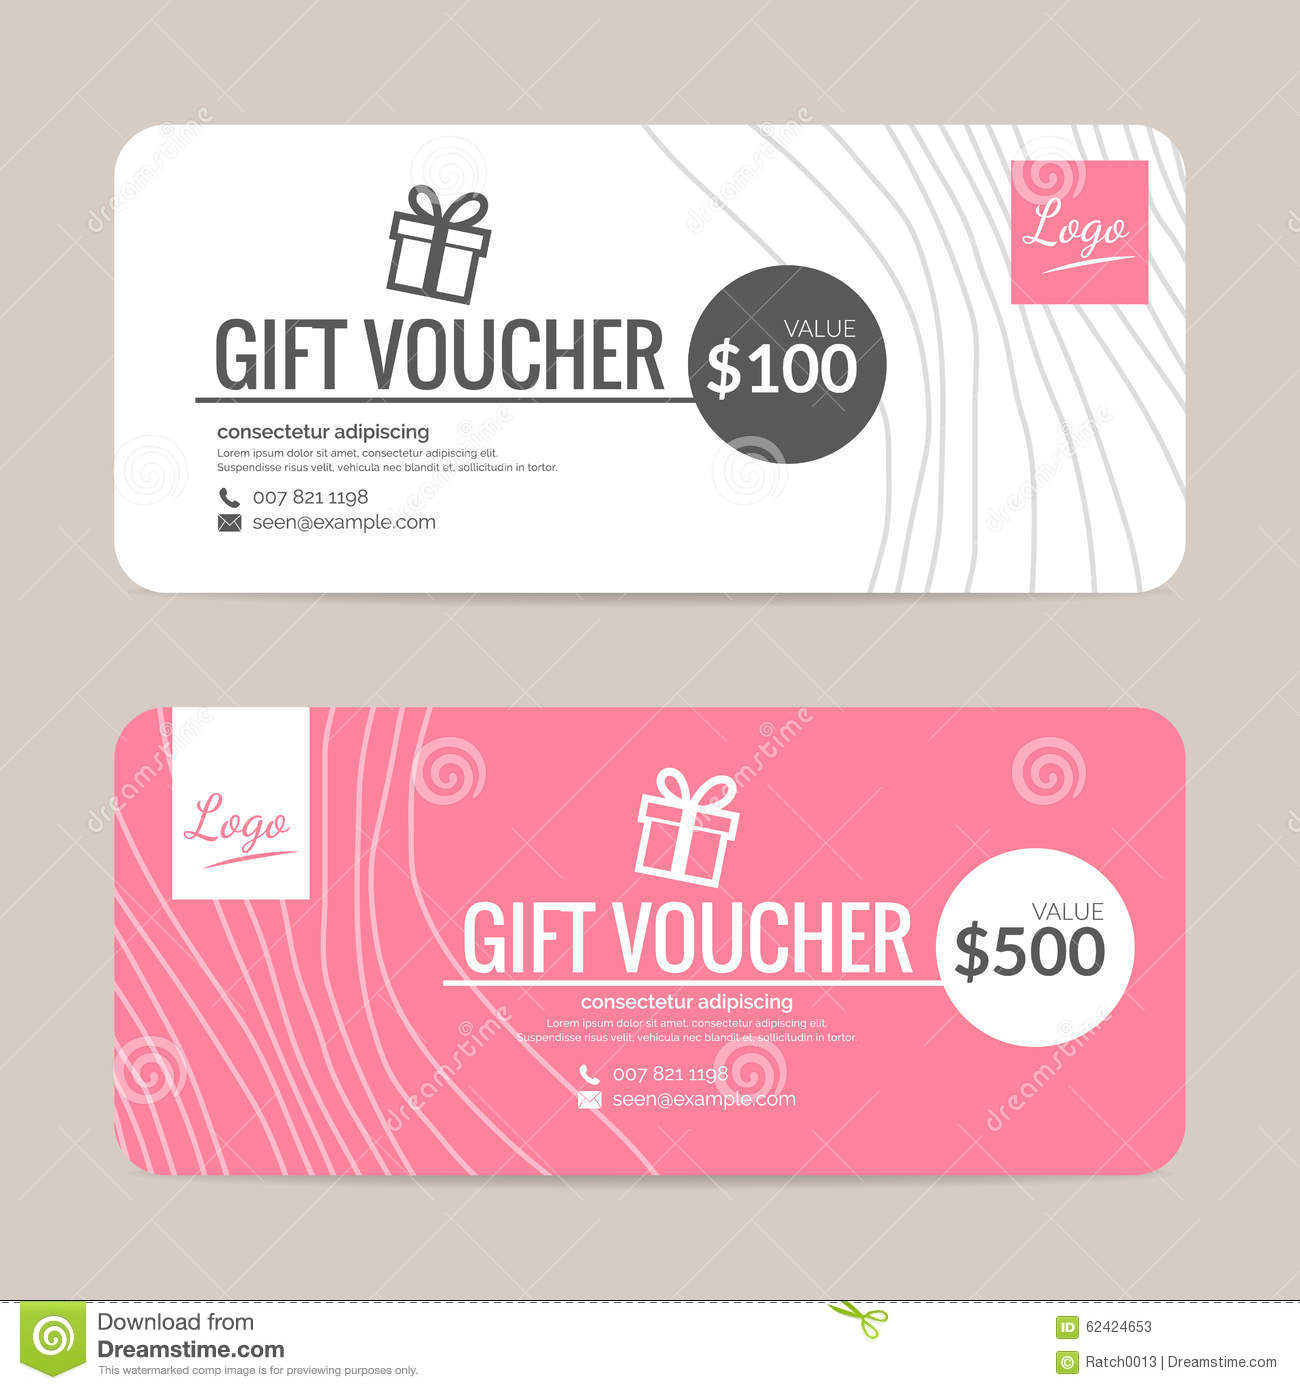 Gift voucher template stock vector illustration of fashion 62424653 download gift voucher template stock vector illustration of fashion 62424653 maxwellsz